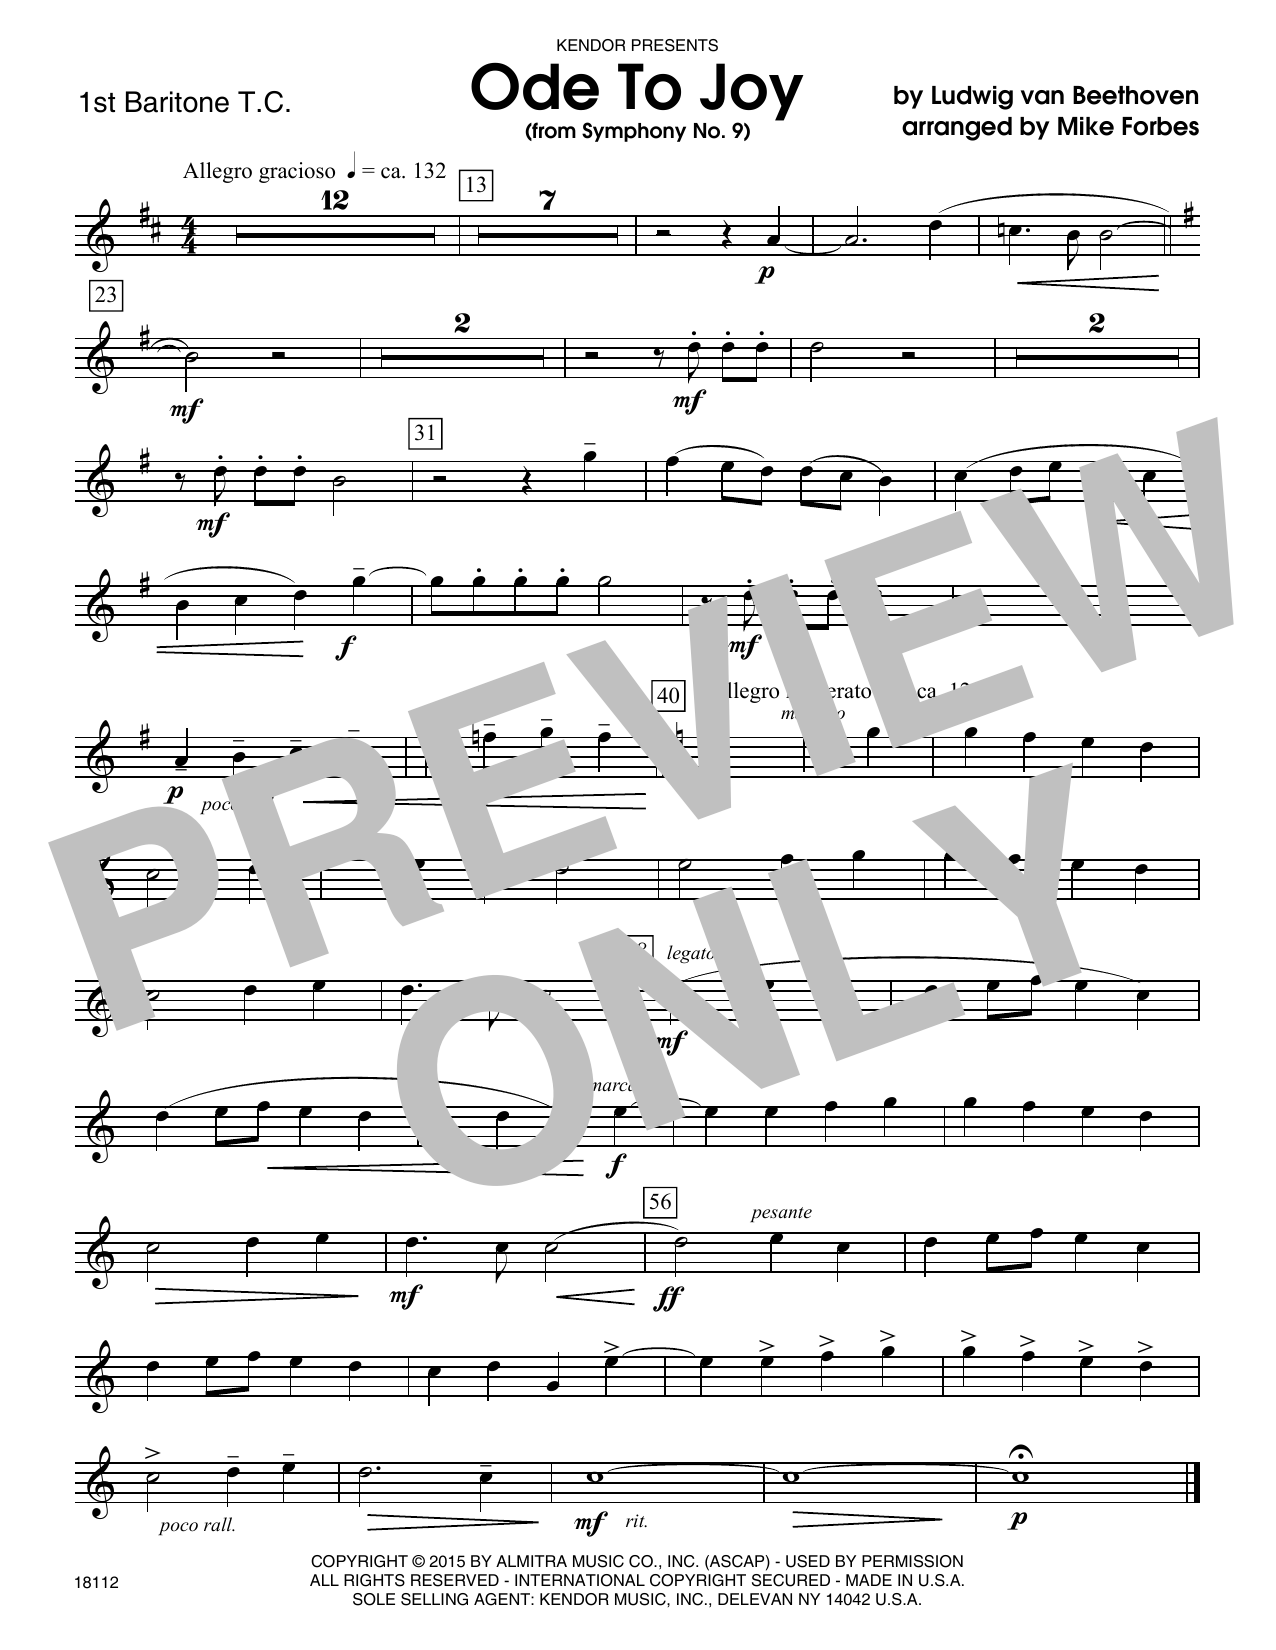 Ode To Joy (from Symphony No. 9) - 1st Baritone T.C. Sheet Music